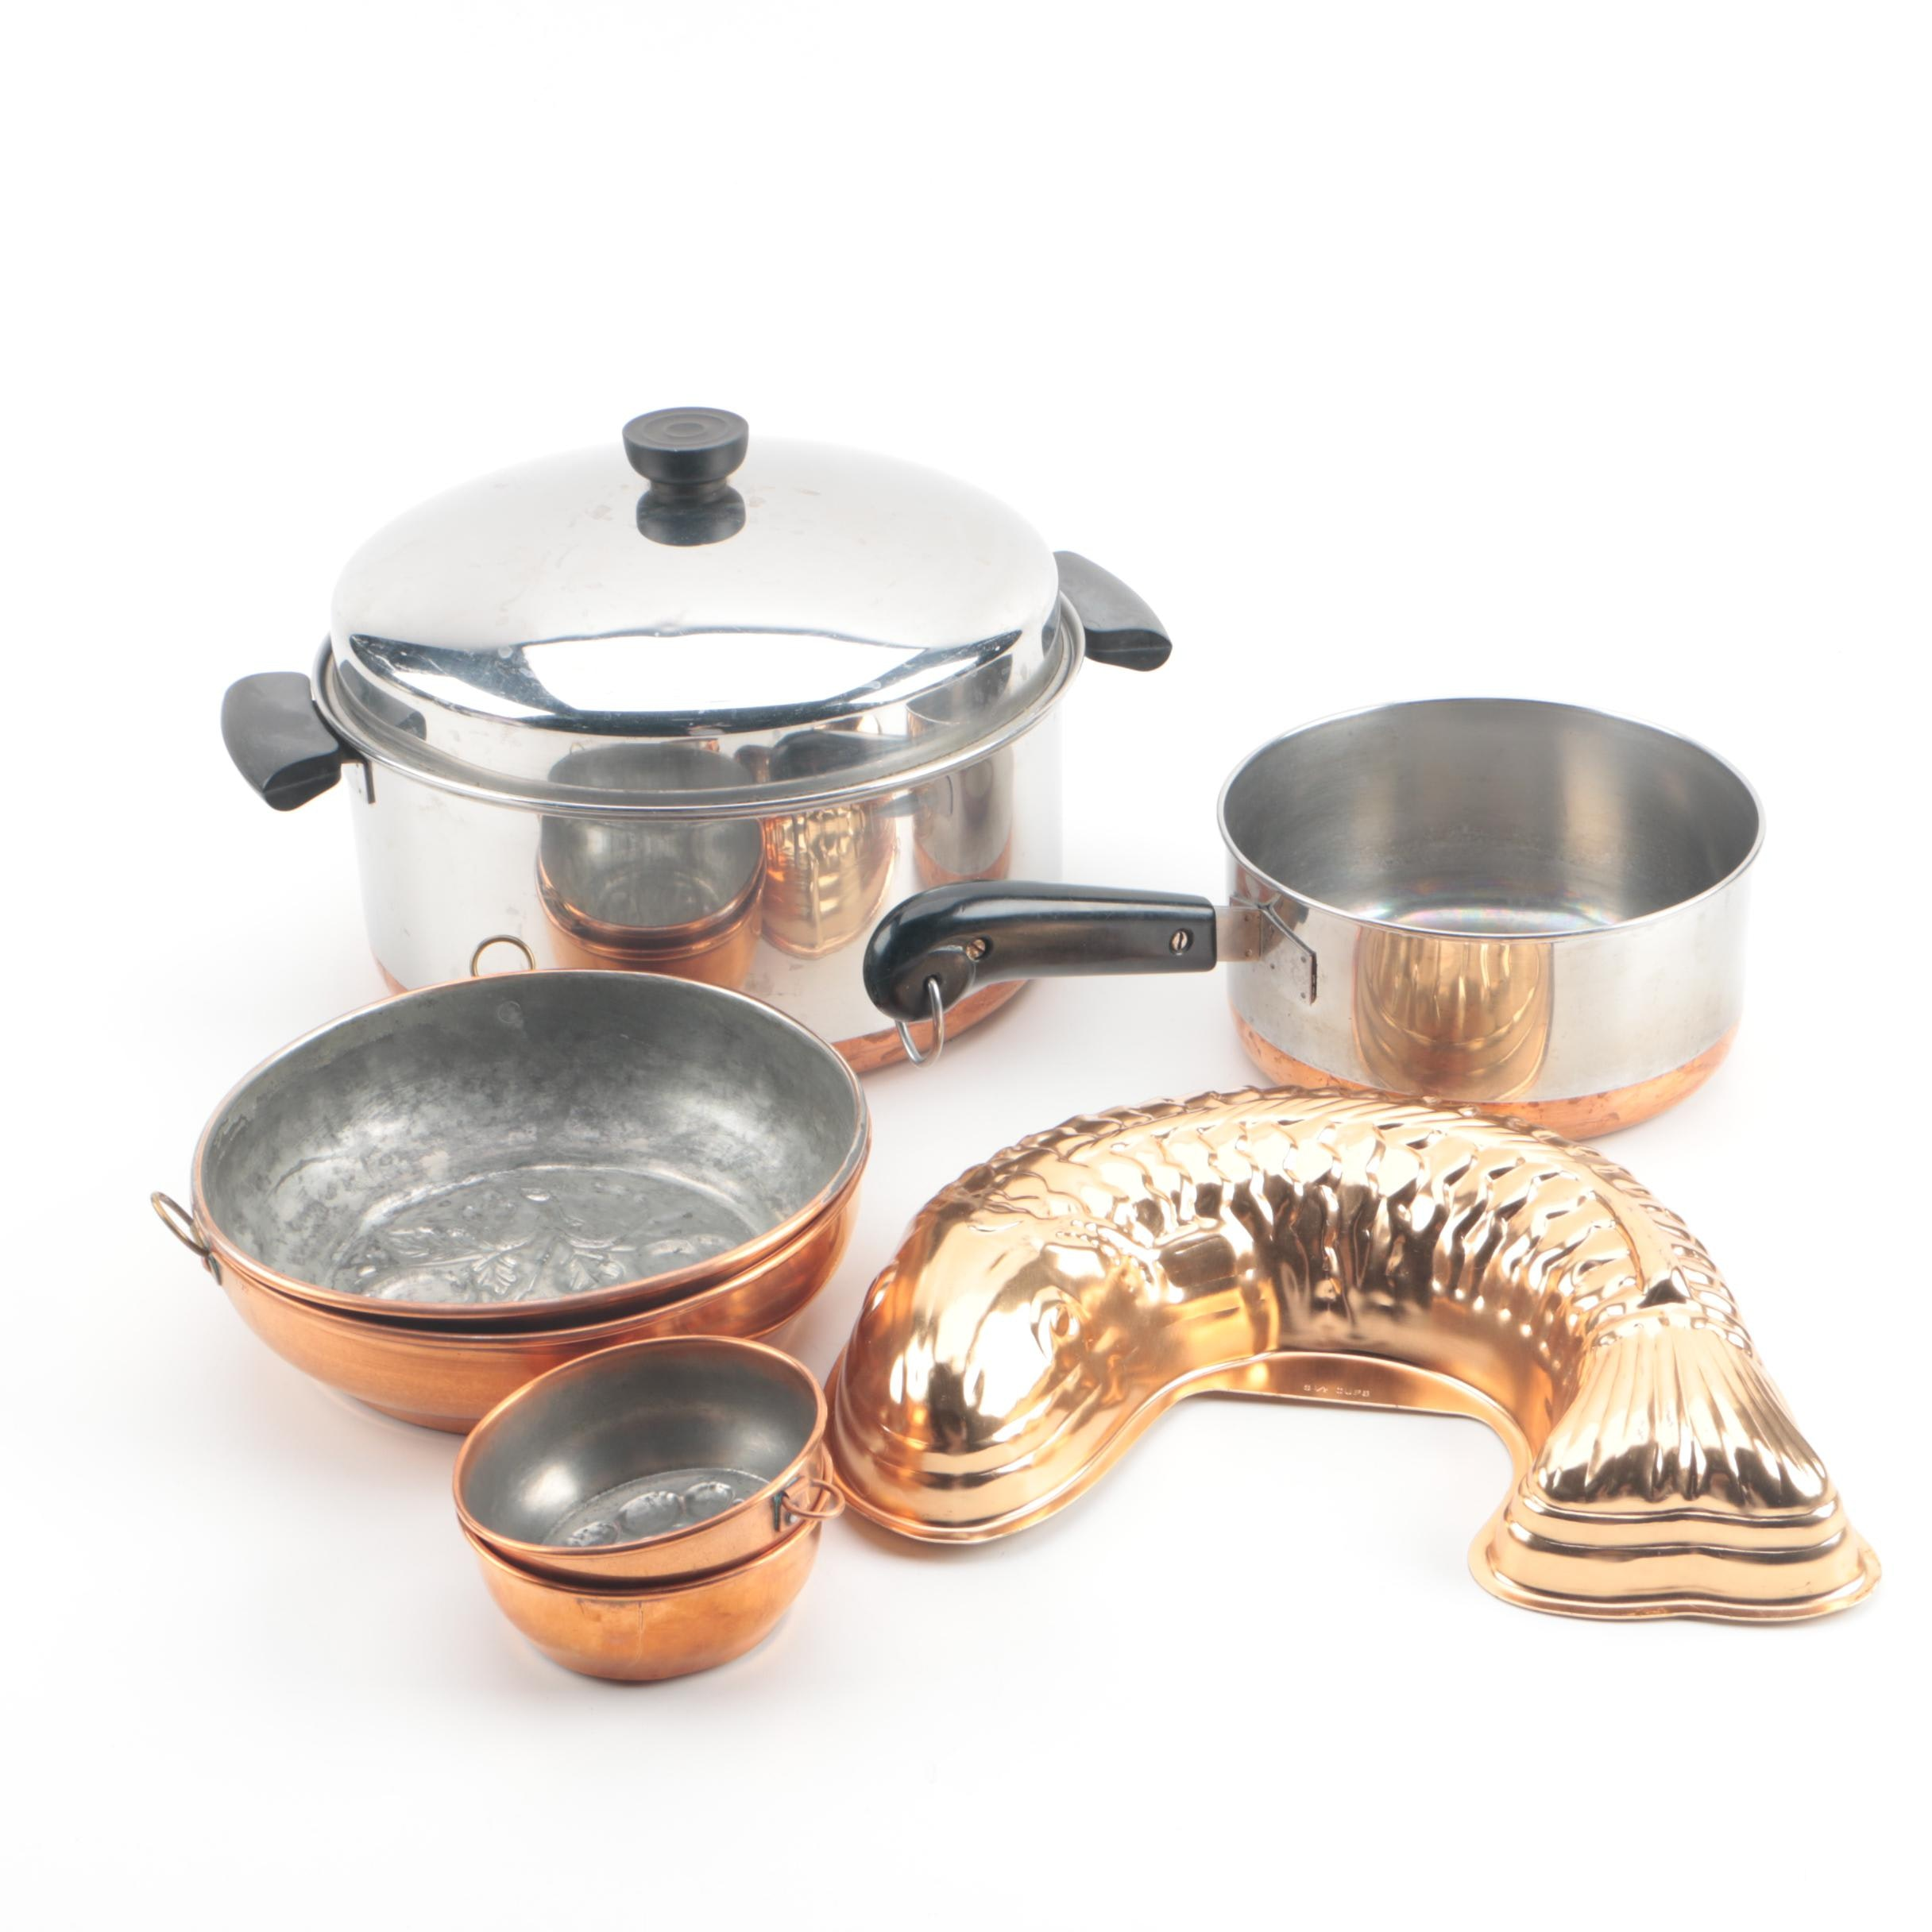 Revereware Steel and Copper Pans and Copper Molds